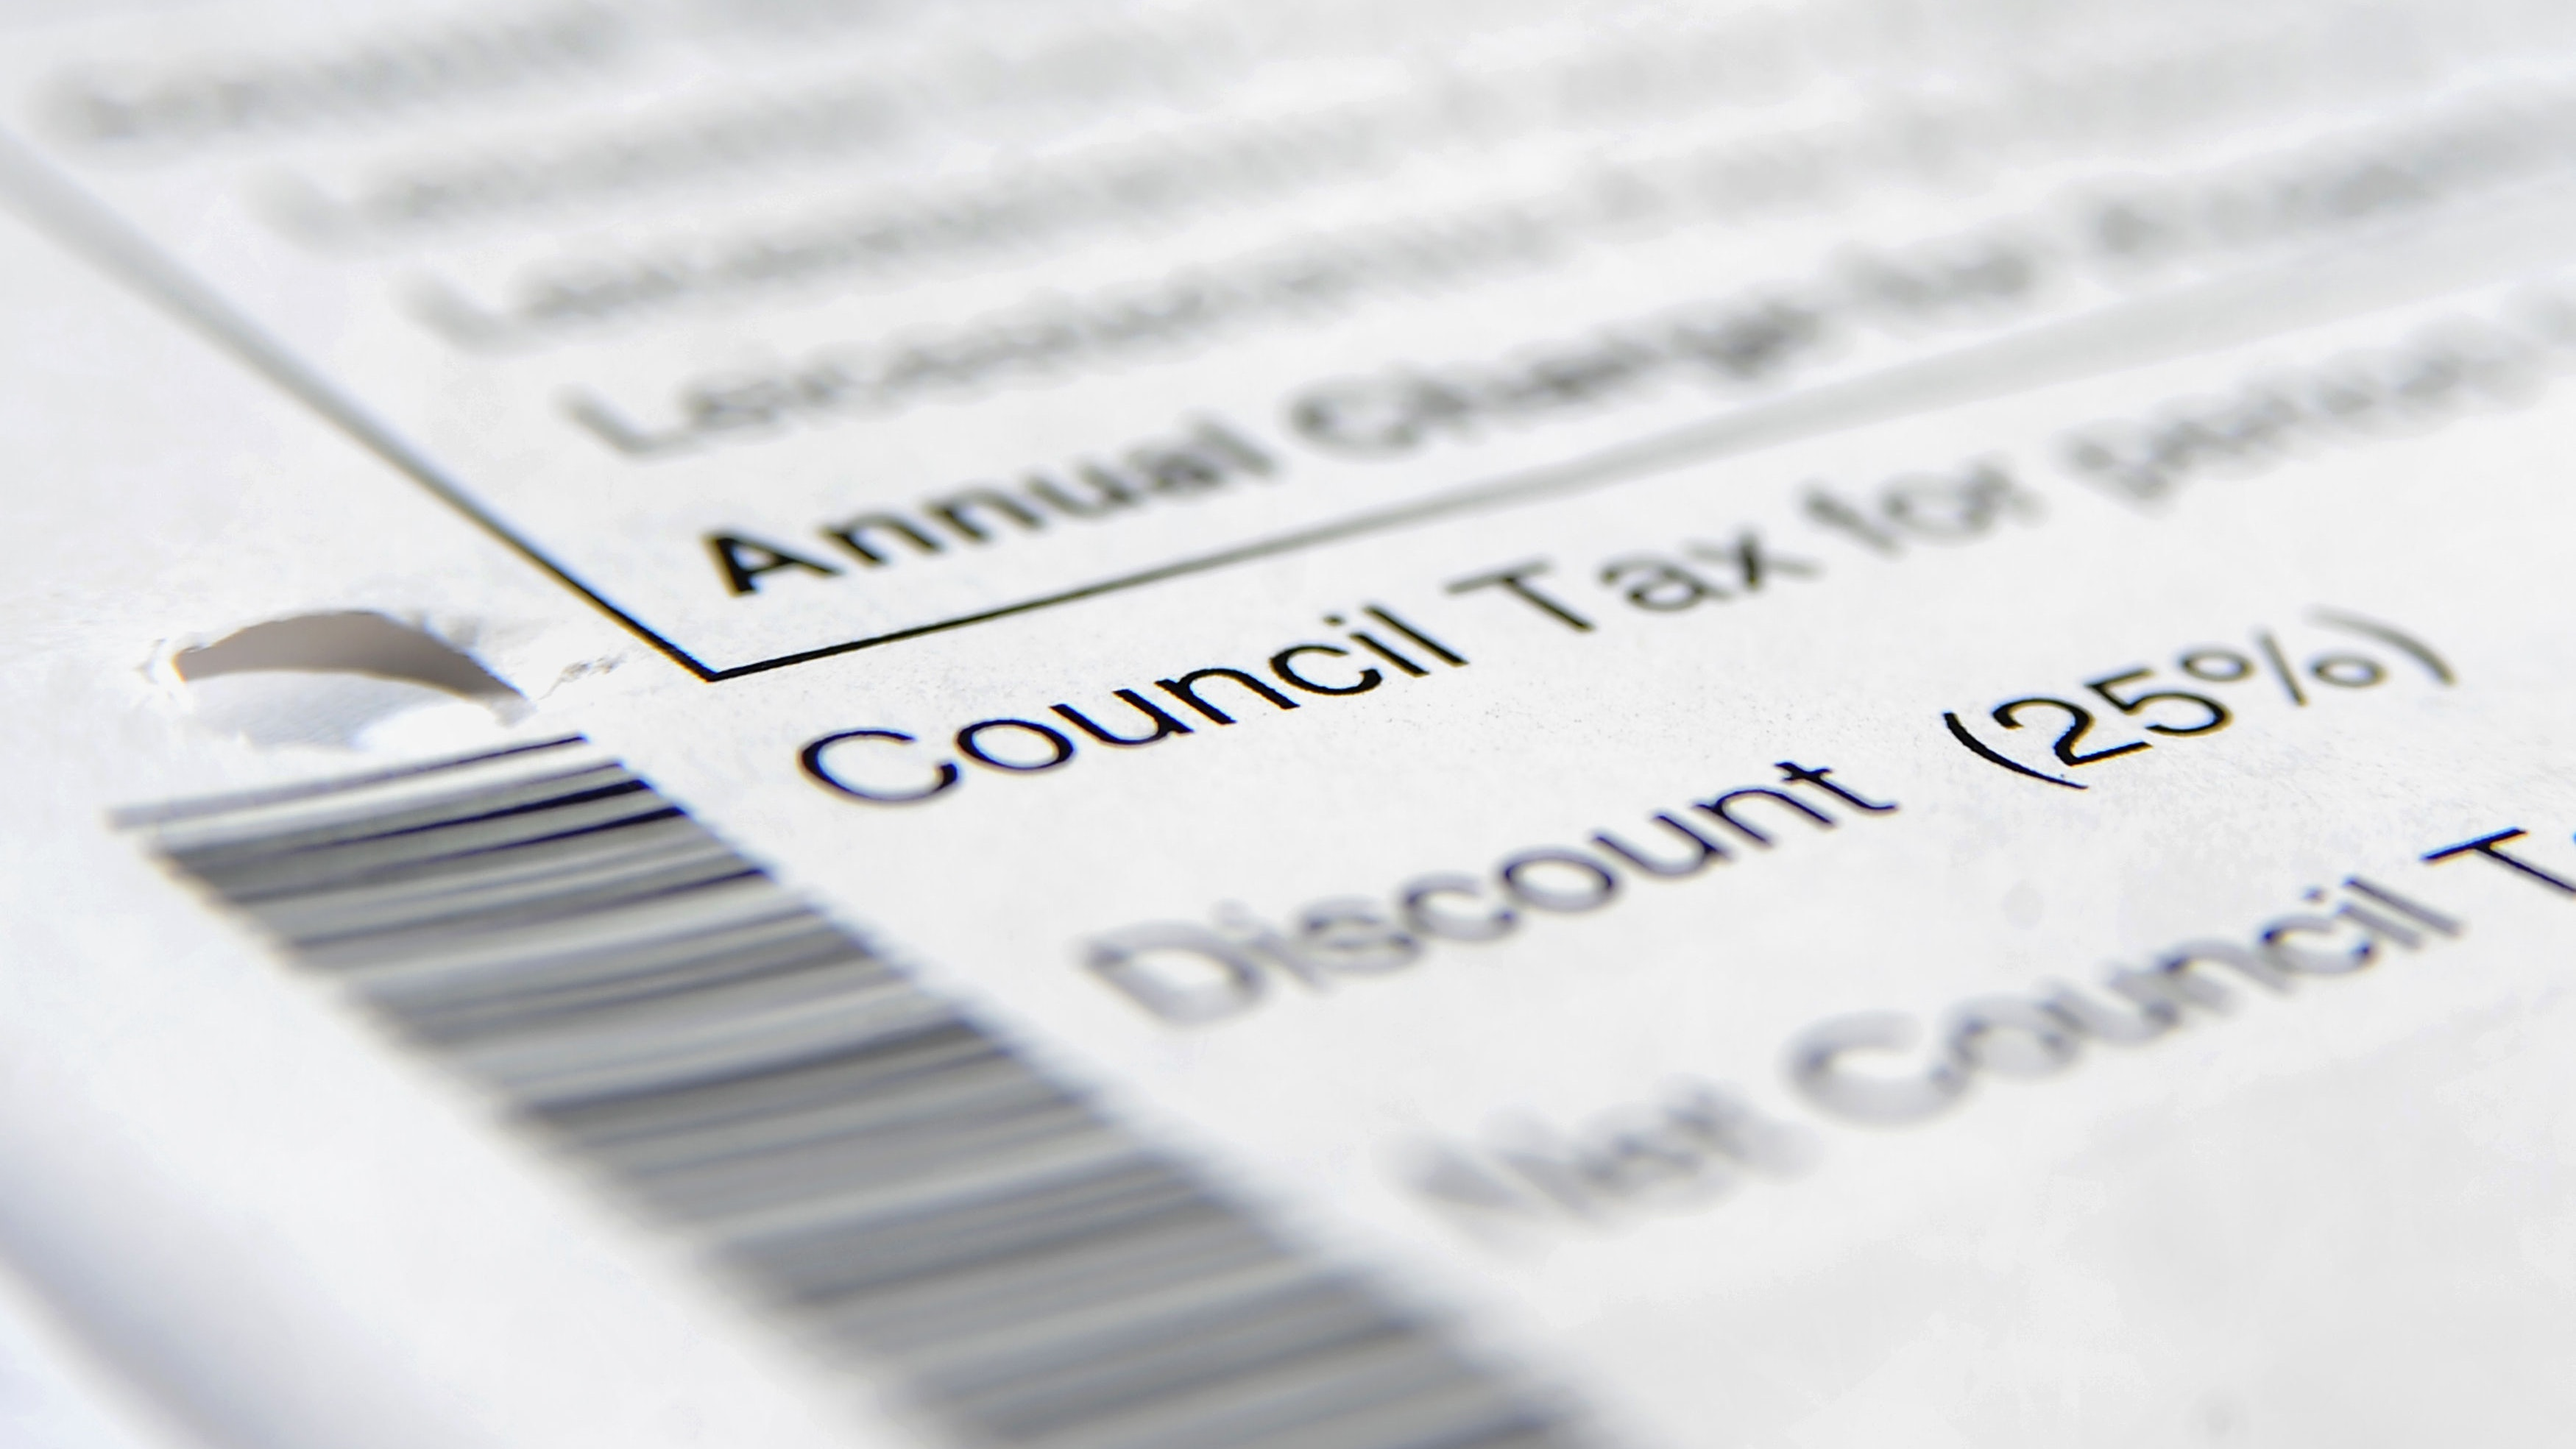 Parking fees and permits set to increase as councils plug budget gaps